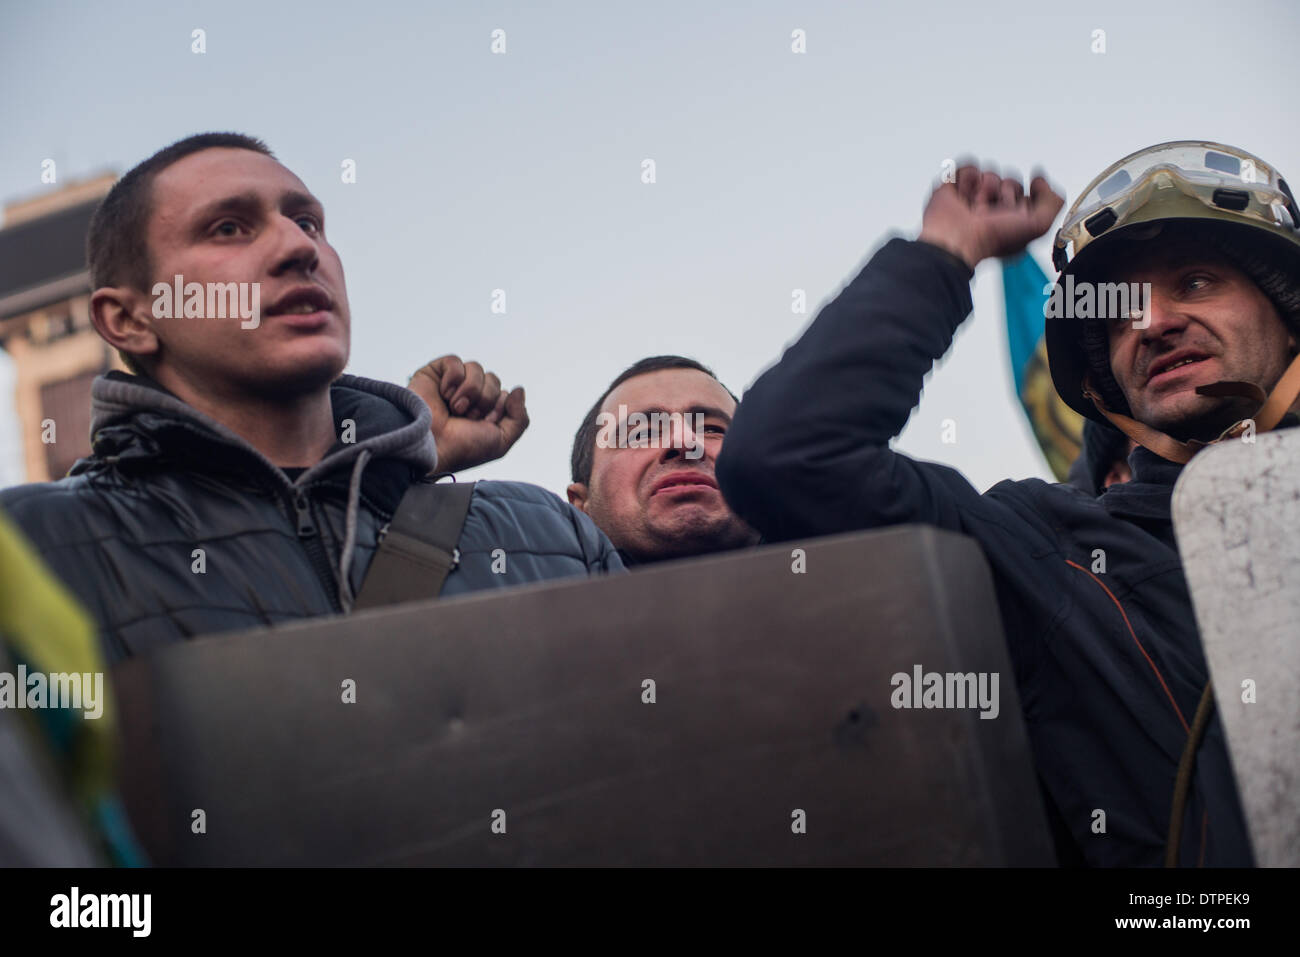 Kiev, Ukraine. 21st Feb, 2014. Kiev, Ukraine ' February 21, 2014 : In Kiev held the ceremony of the burial of dead protesters. Near 50.000 people were shouting ''Heroes do not die''. At least 77 people have been reported dead, and more than 1,000 injured in the last two days clashes. On Independence Square were made the memorials with flower and candles to honor the memory of dead protesters. © Julia Kochetova/NurPhoto/ZUMAPRESS.com/Alamy Live News - Stock Image